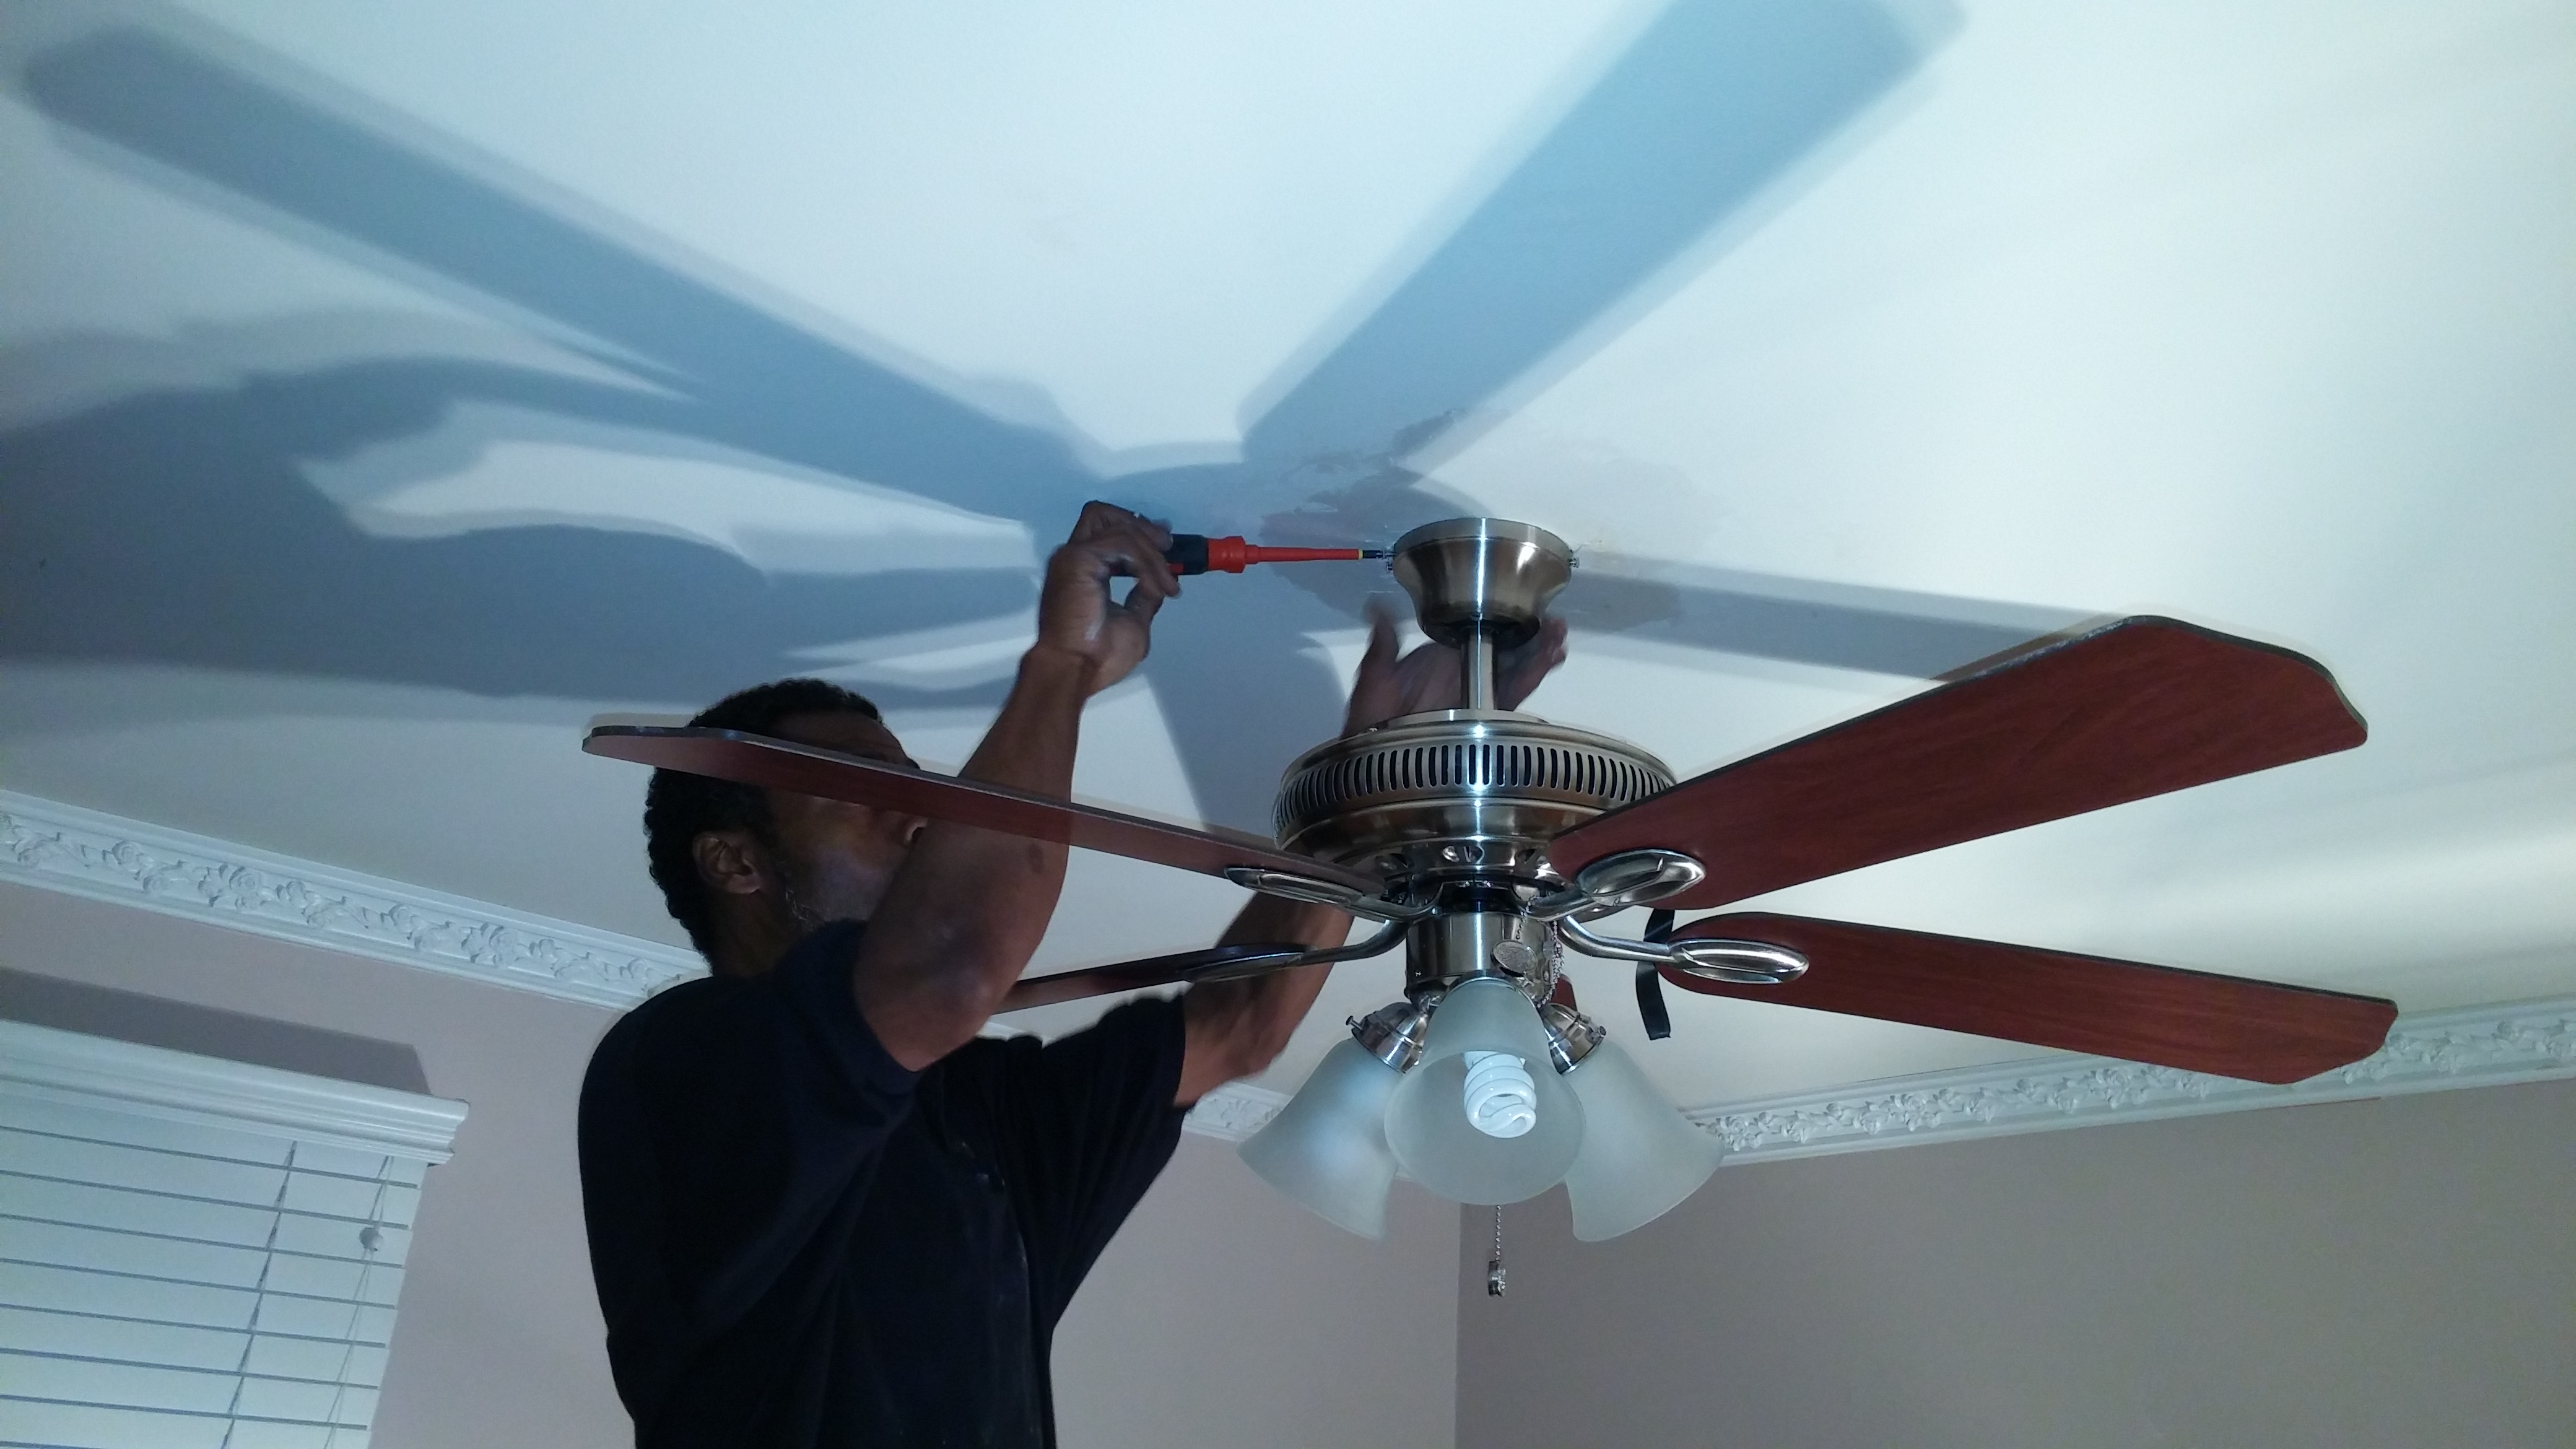 How To Install A Ceiling Fan Lightning Fans Canopy For Pendant Light Kits On Kit Wiring